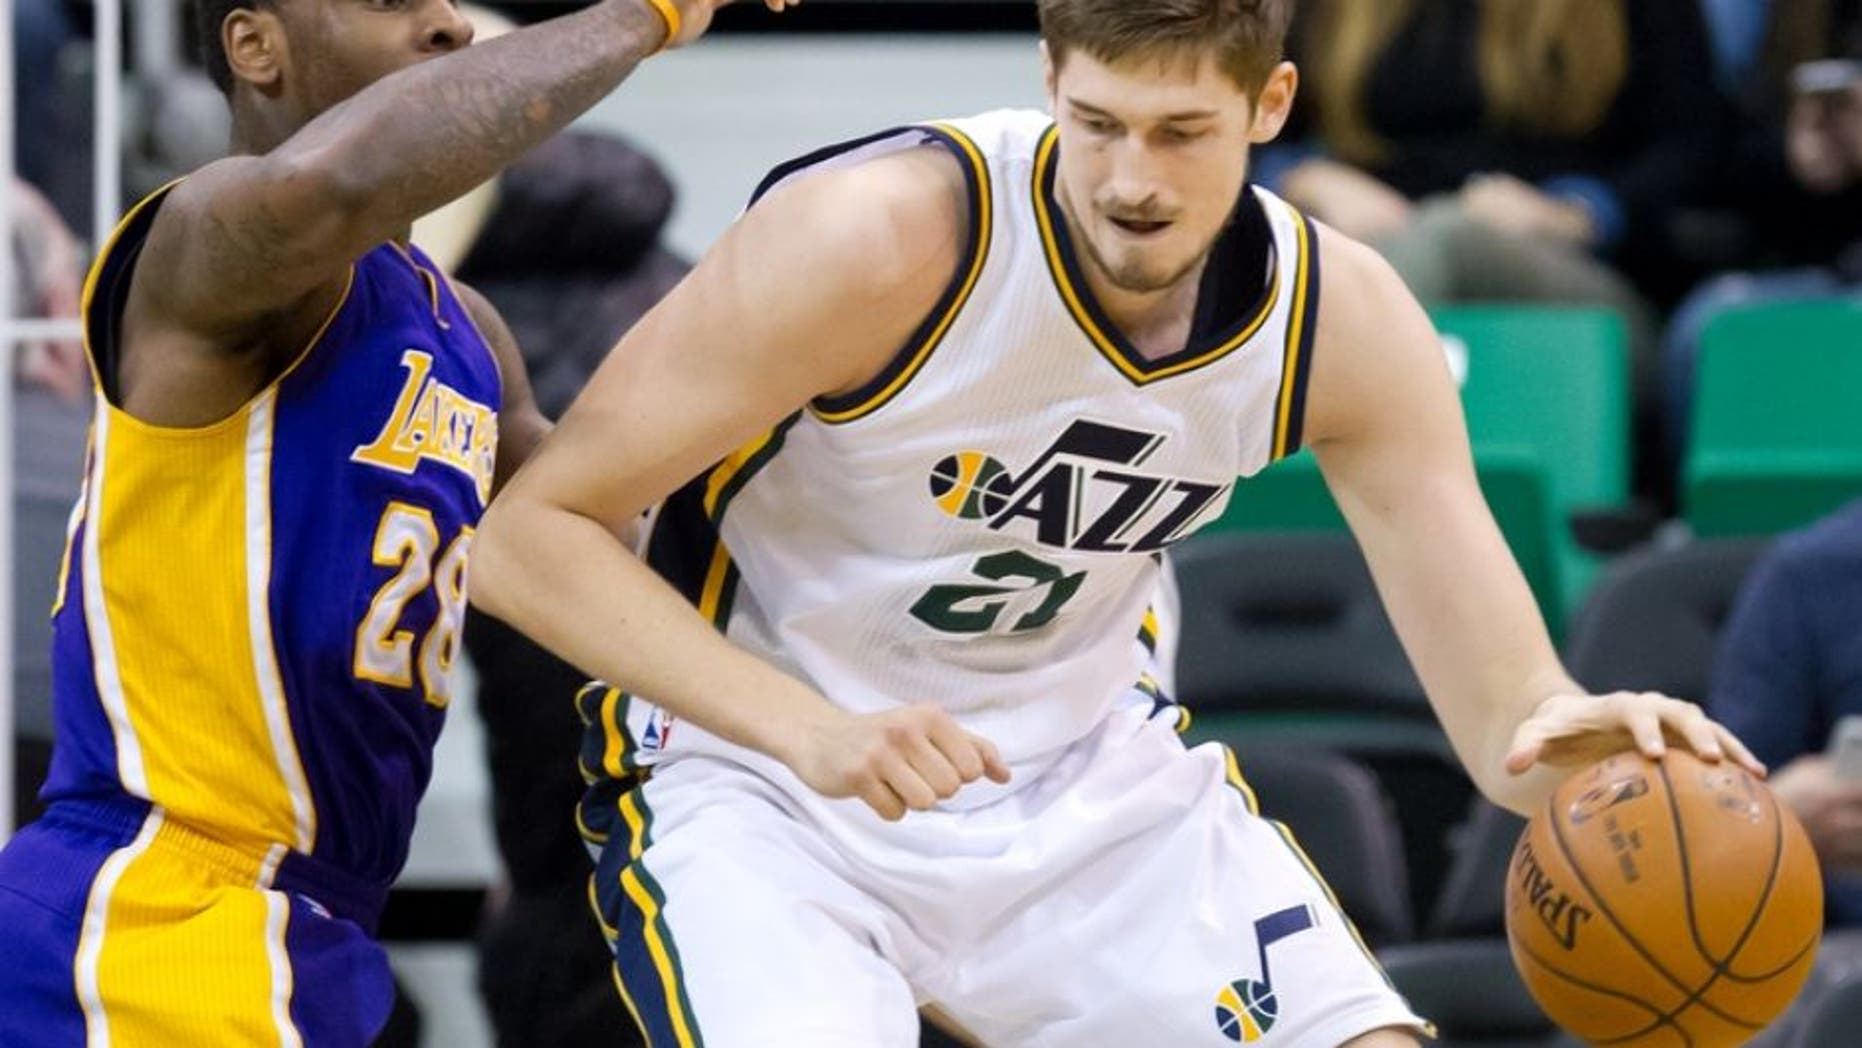 Jan 16, 2016; Salt Lake City, UT, USA; Los Angeles Lakers center Tarik Black (28) defends against Utah Jazz center Tibor Pleiss (21) during the second half at Vivint Smart Home Arena. The Jazz won 109-82. Mandatory Credit: Russ Isabella-USA TODAY Sports